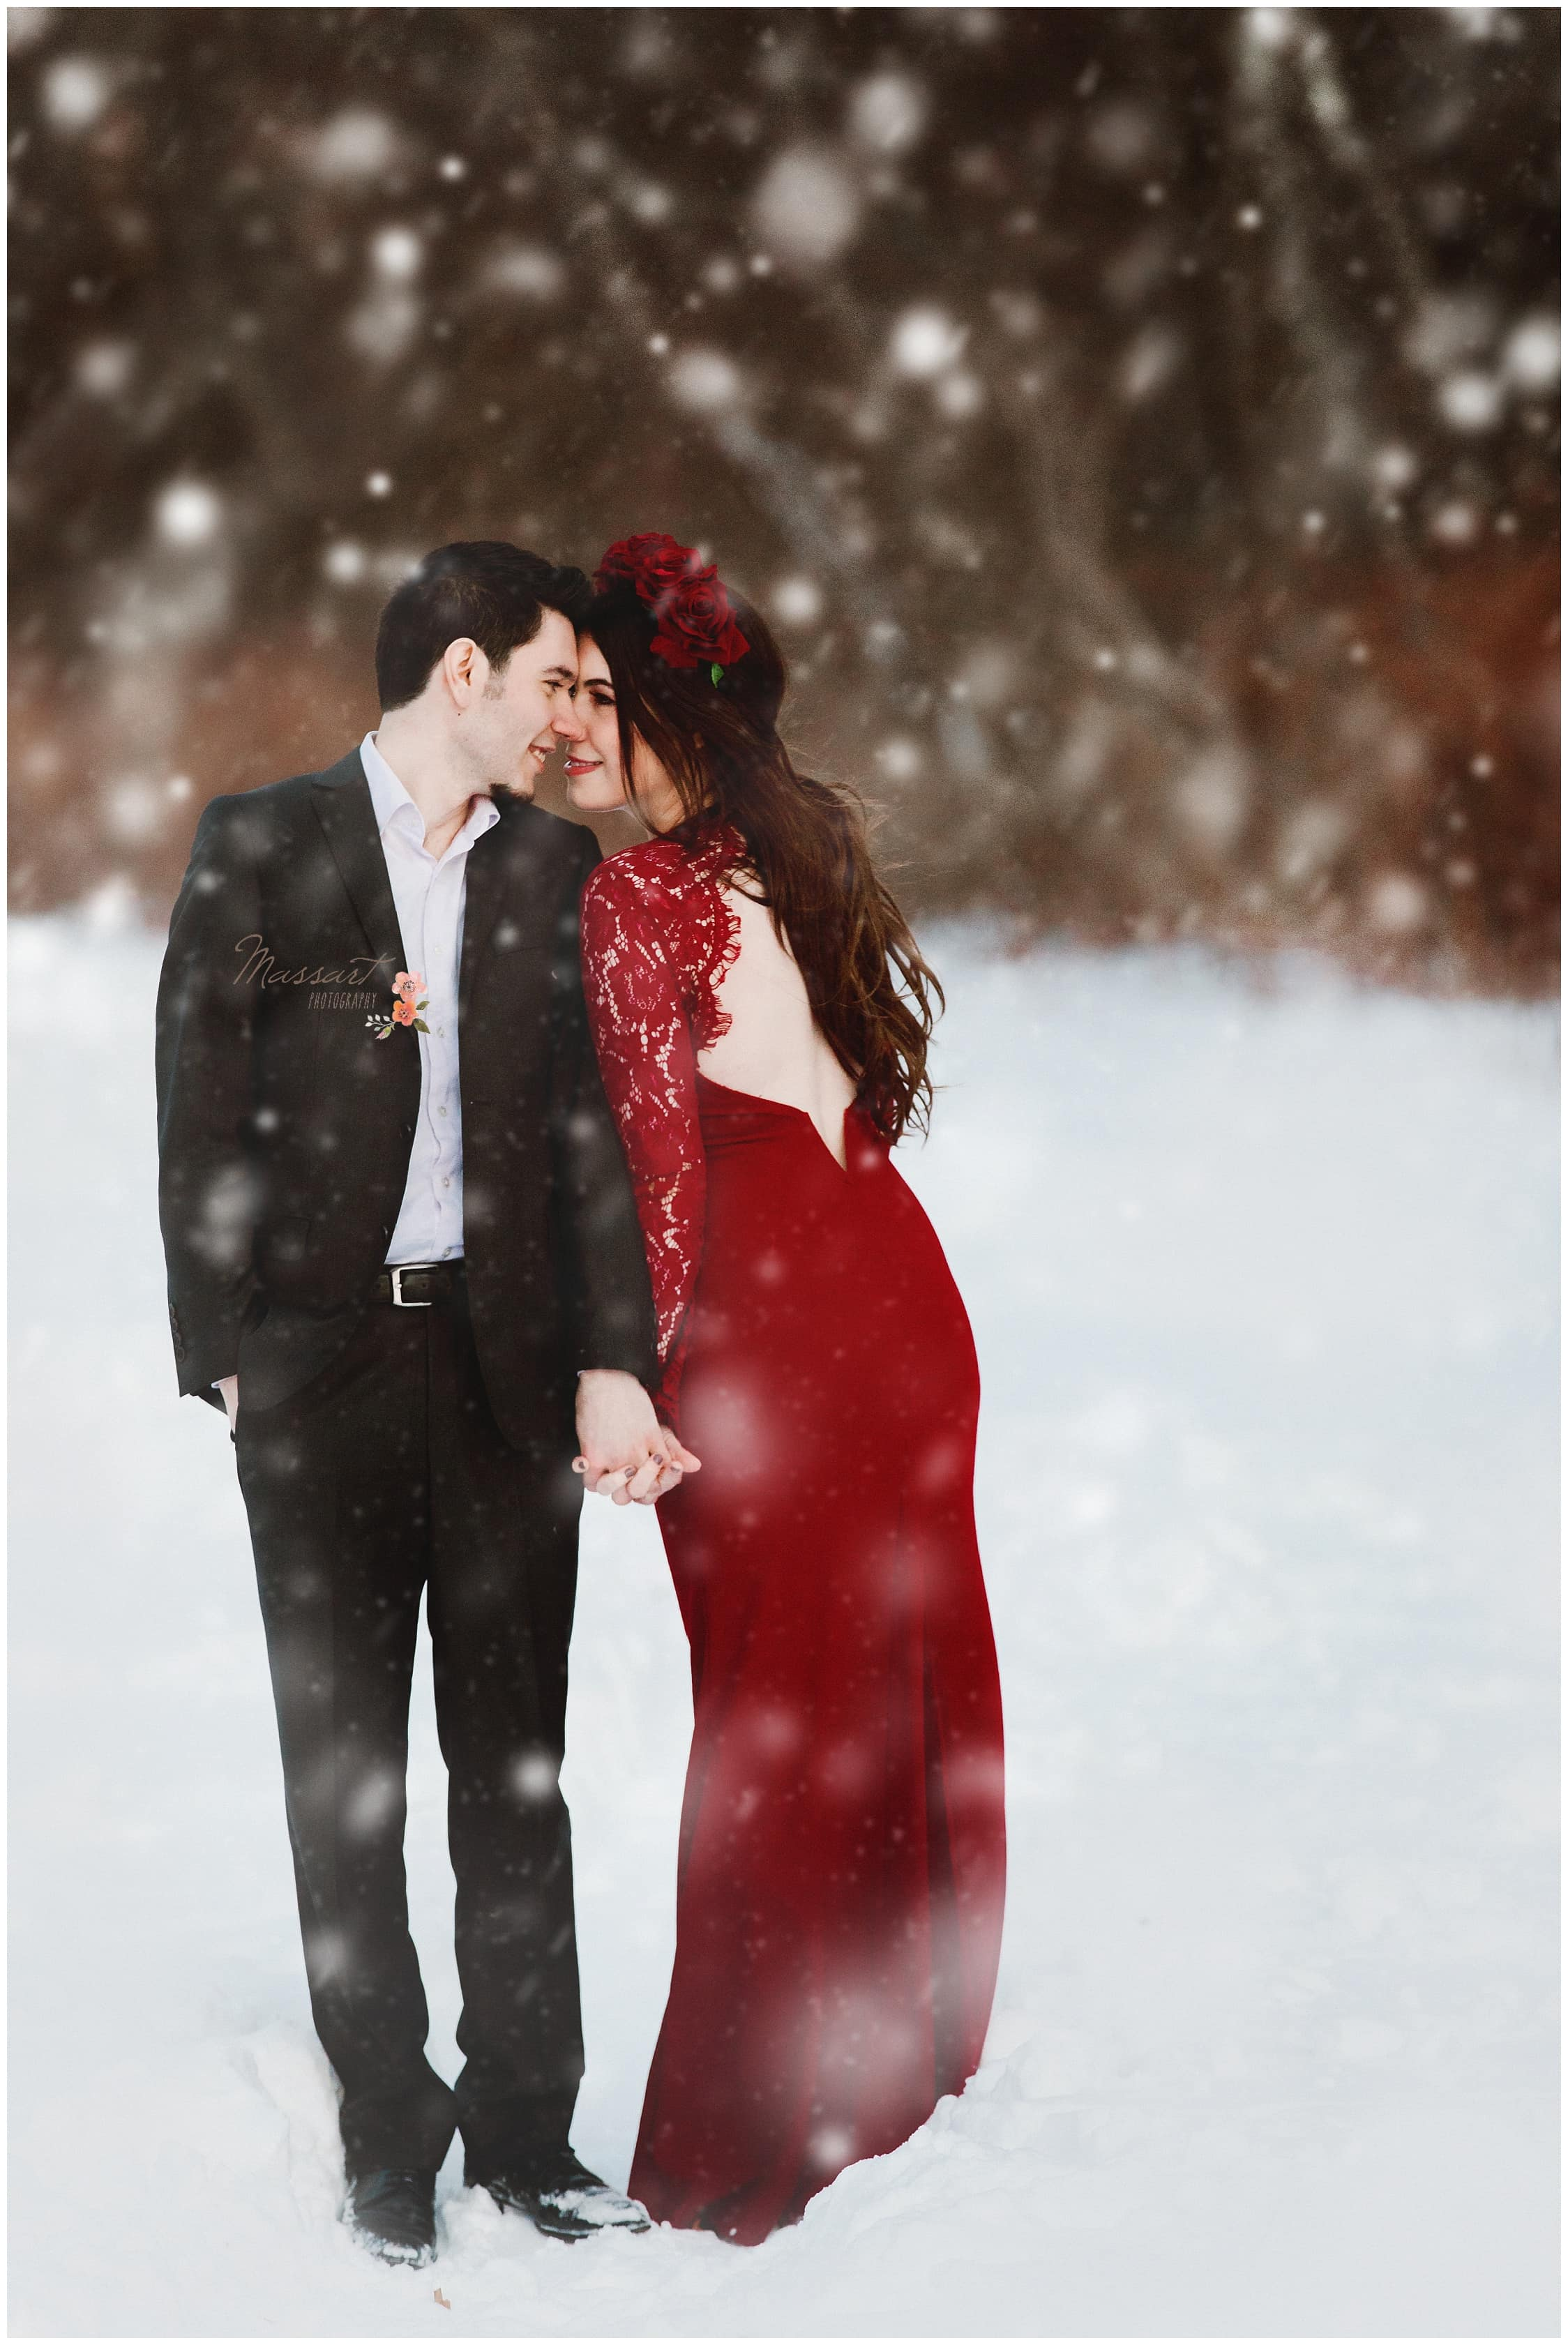 Snow engagement session taken by Rhode Island photographers from Massart Photography who also service CT and MA